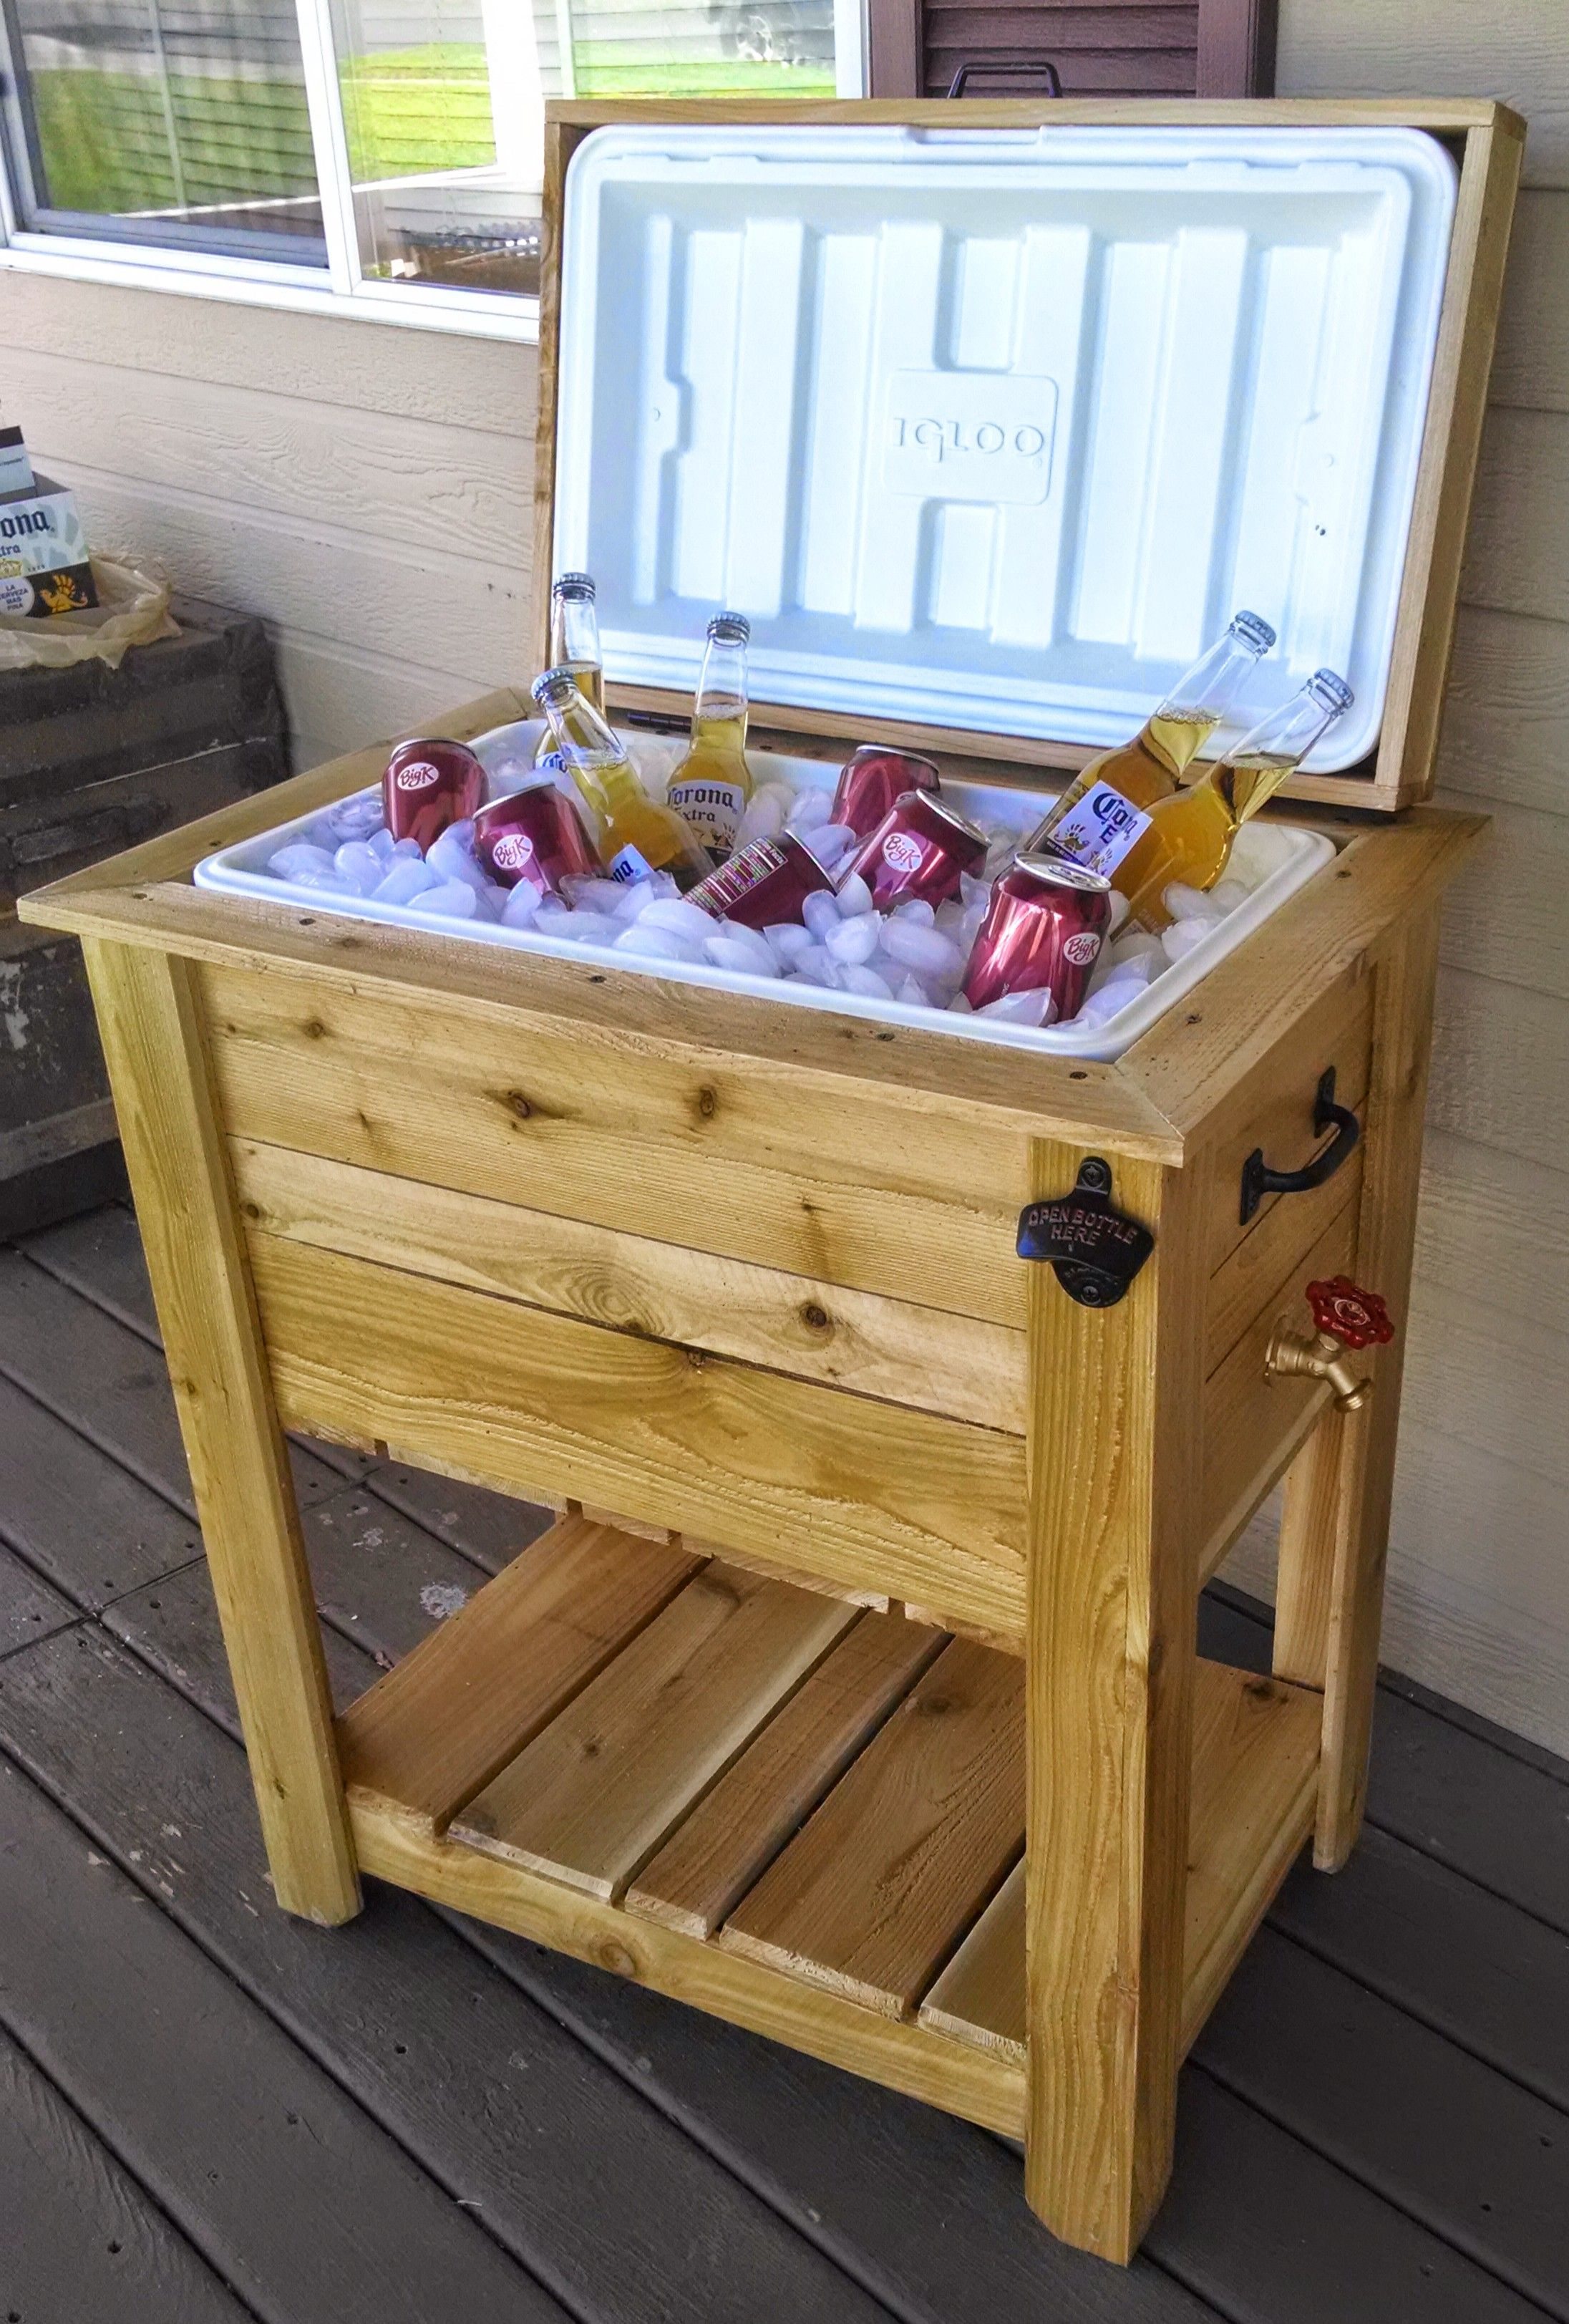 This Ice Chest Box is made out of quality materials Western Red